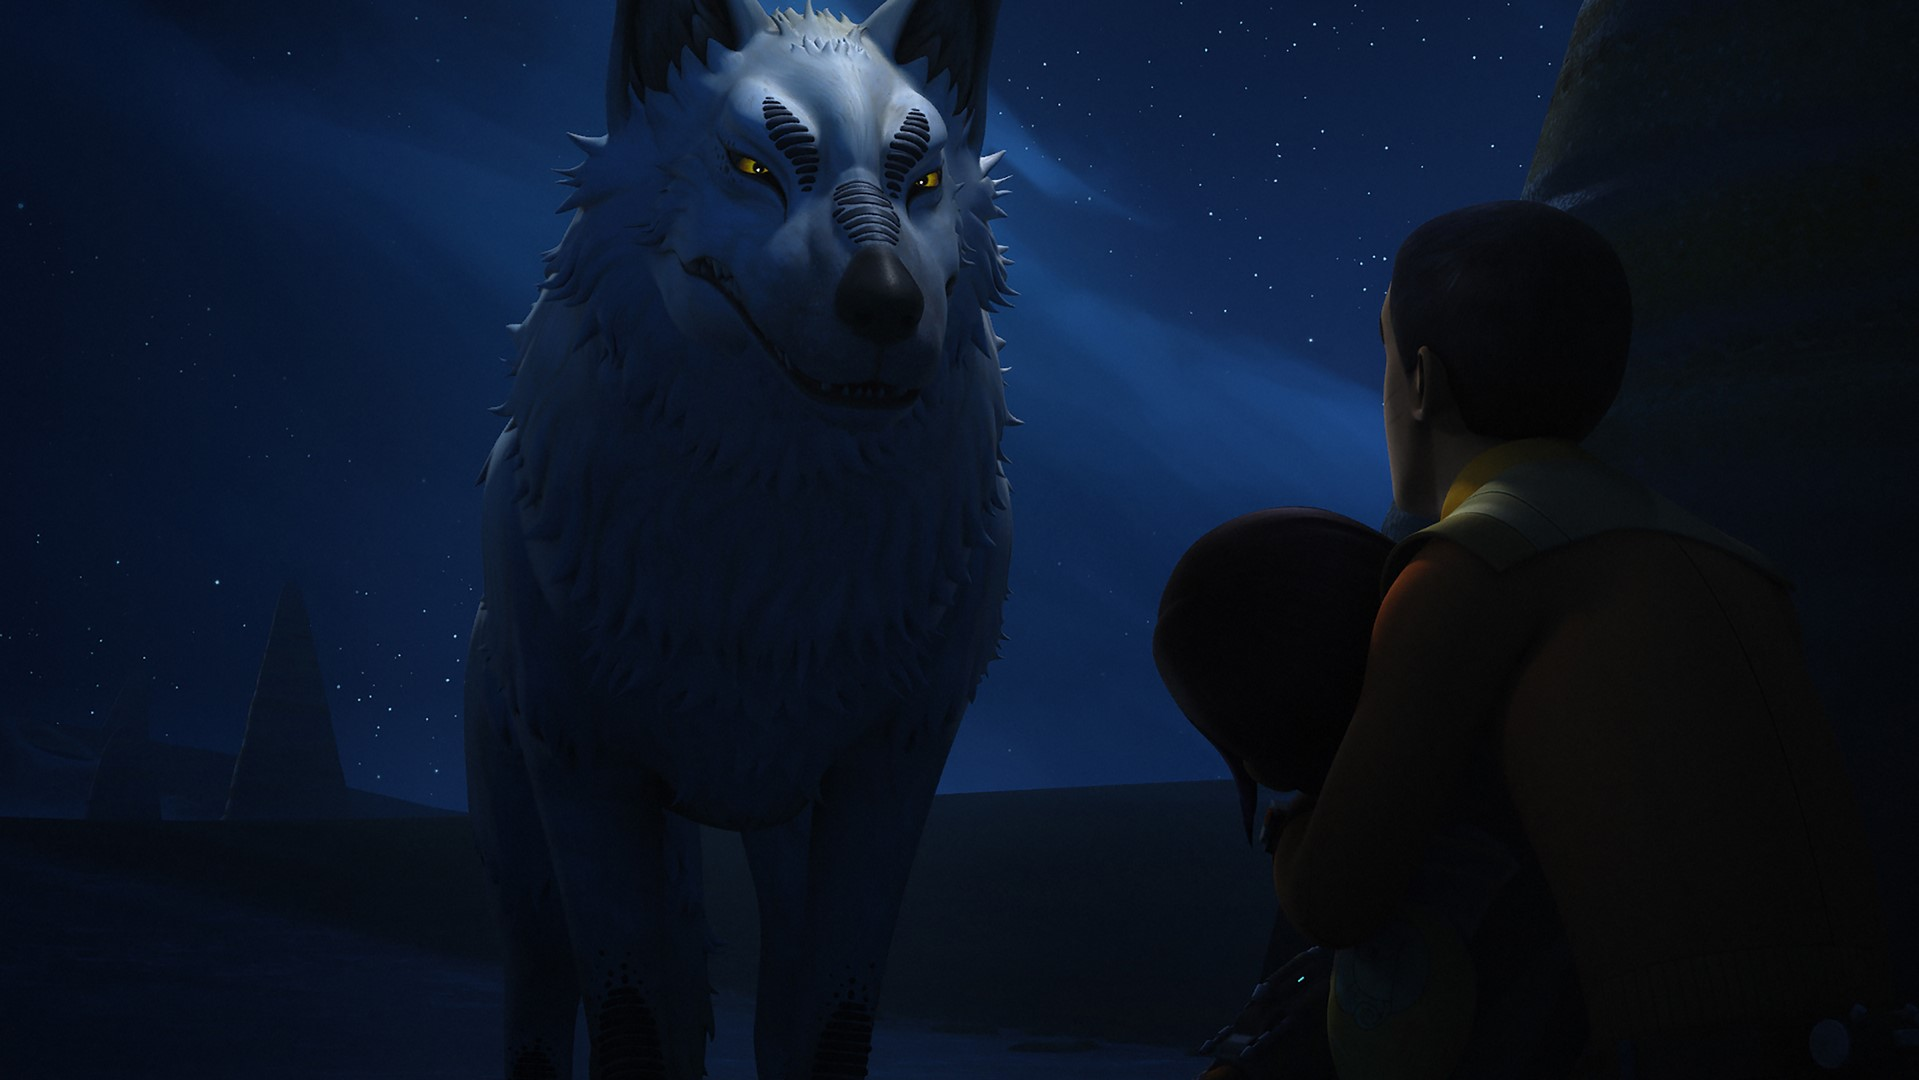 lothwolf star wars rebels wiki fandom powered by wikia